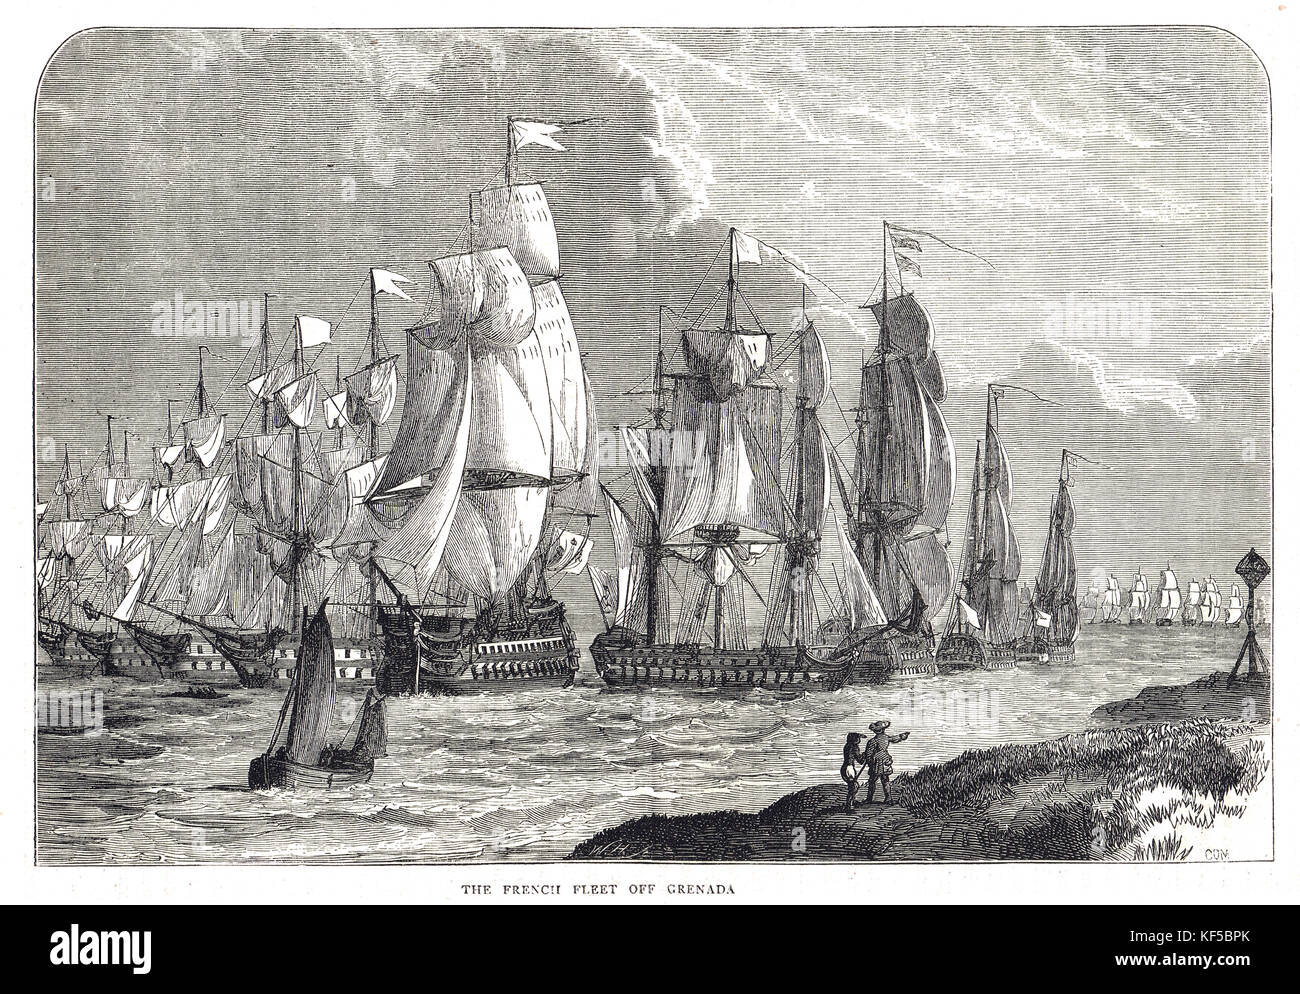 French Fleet off Grenada, Capture of Grenada in July 1779